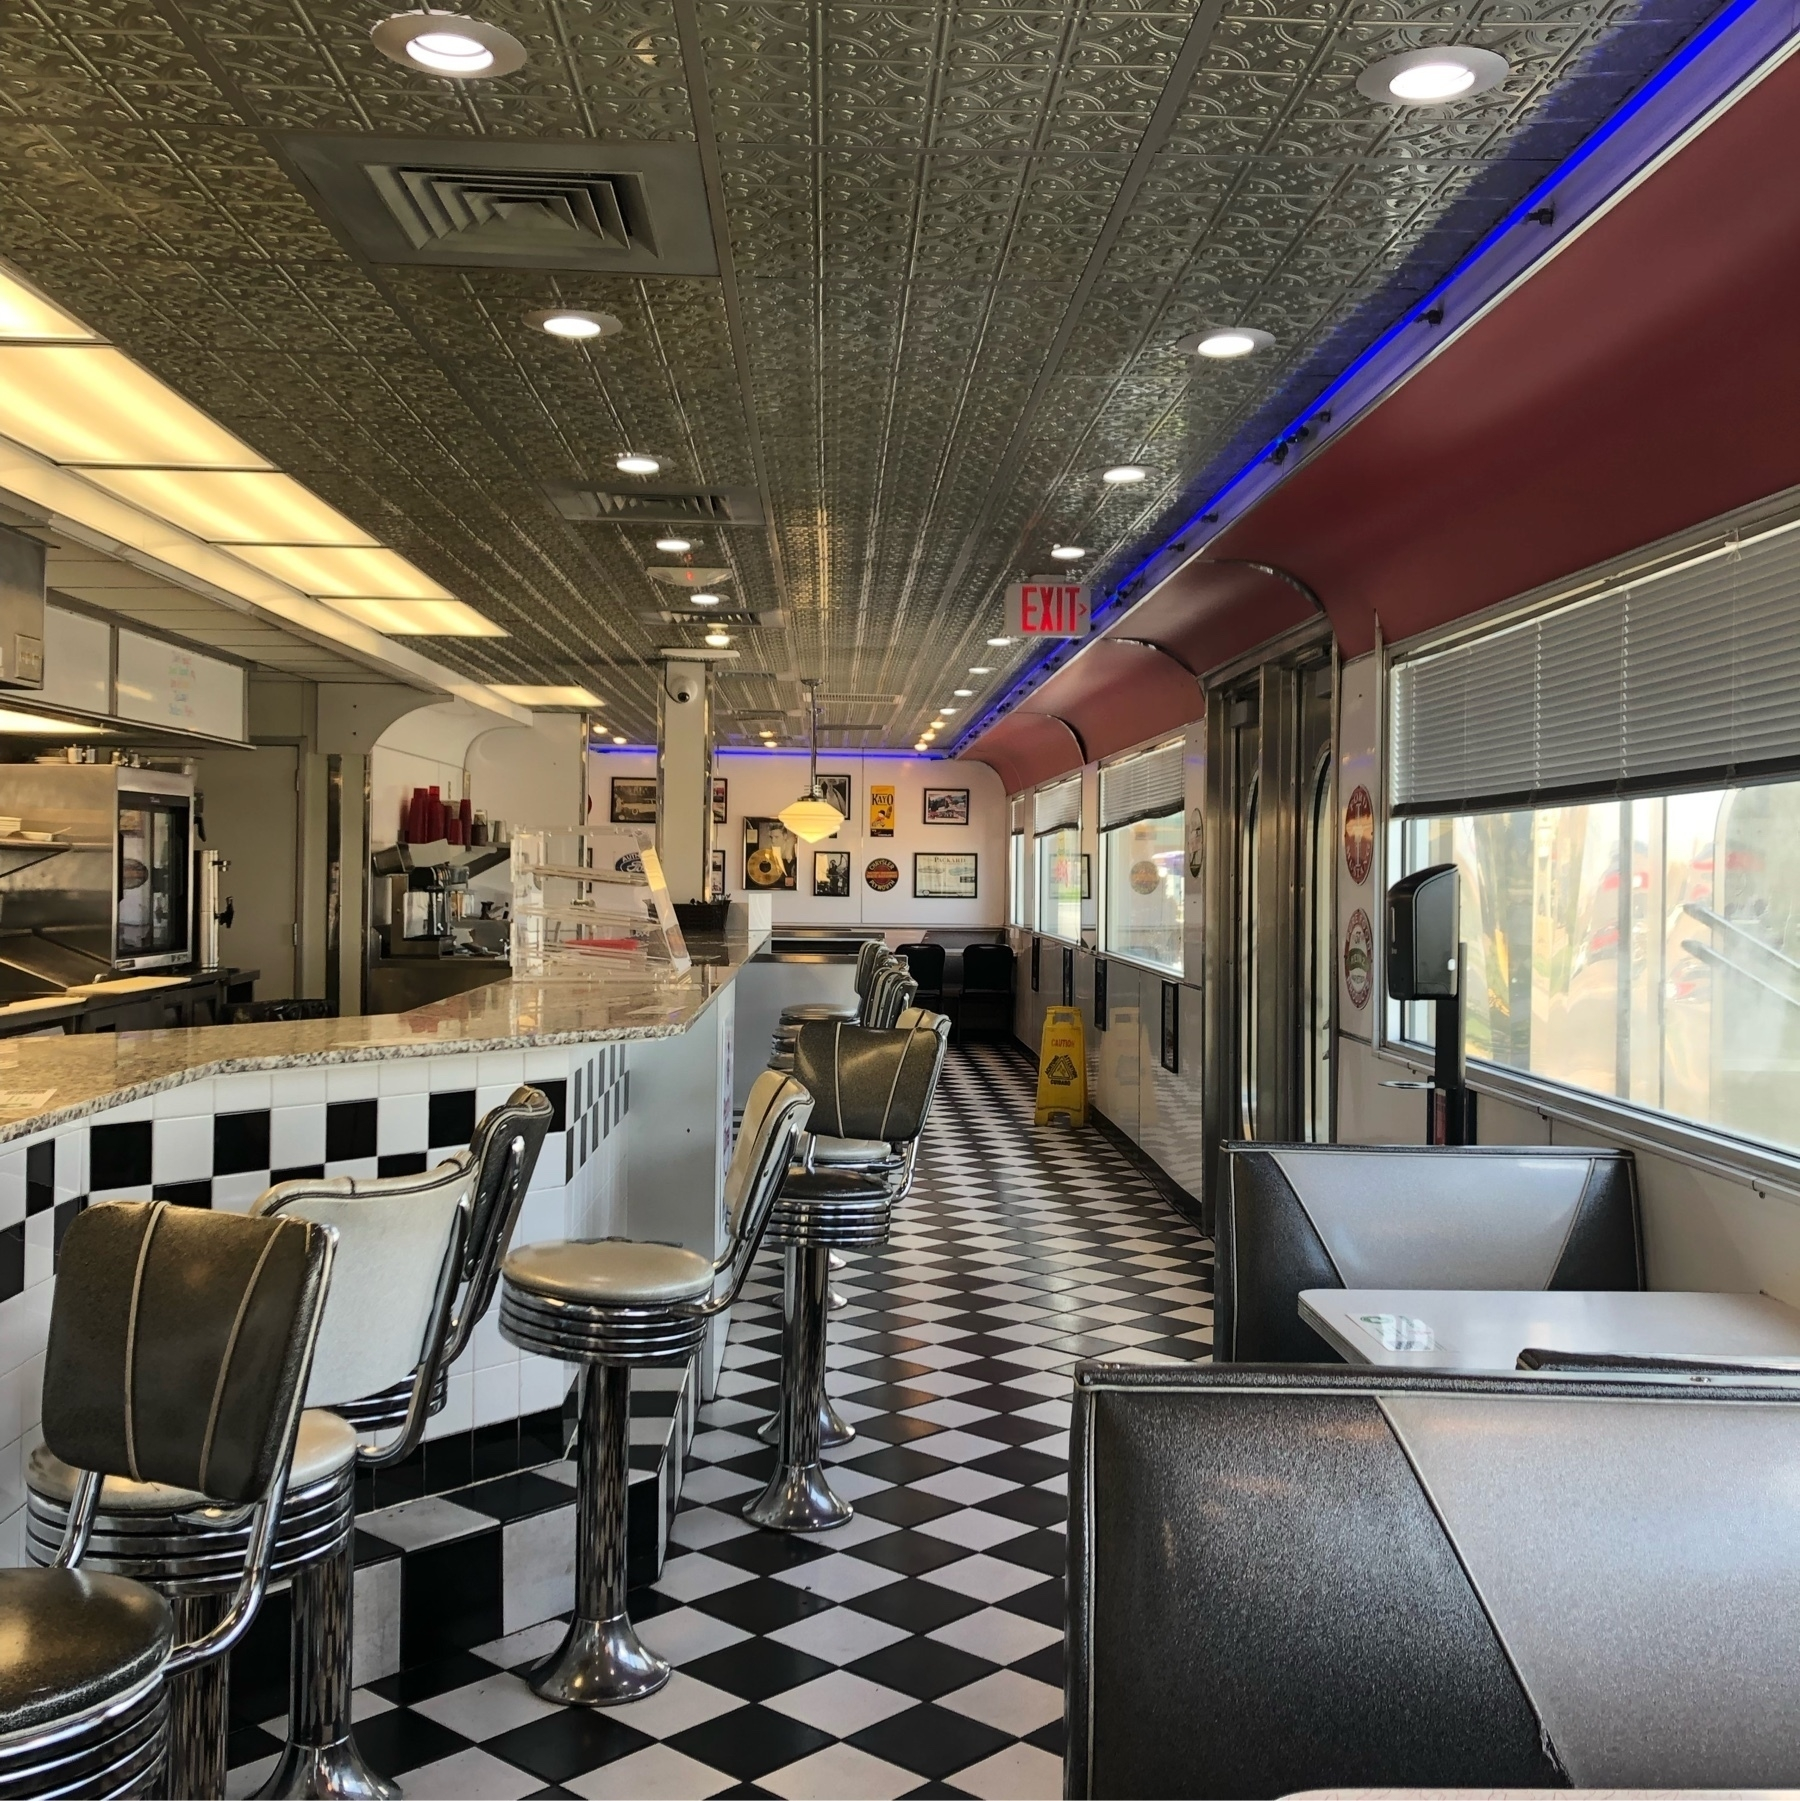 An old fashioned diner with a checkered floor, round stools, and a tin ceiling.